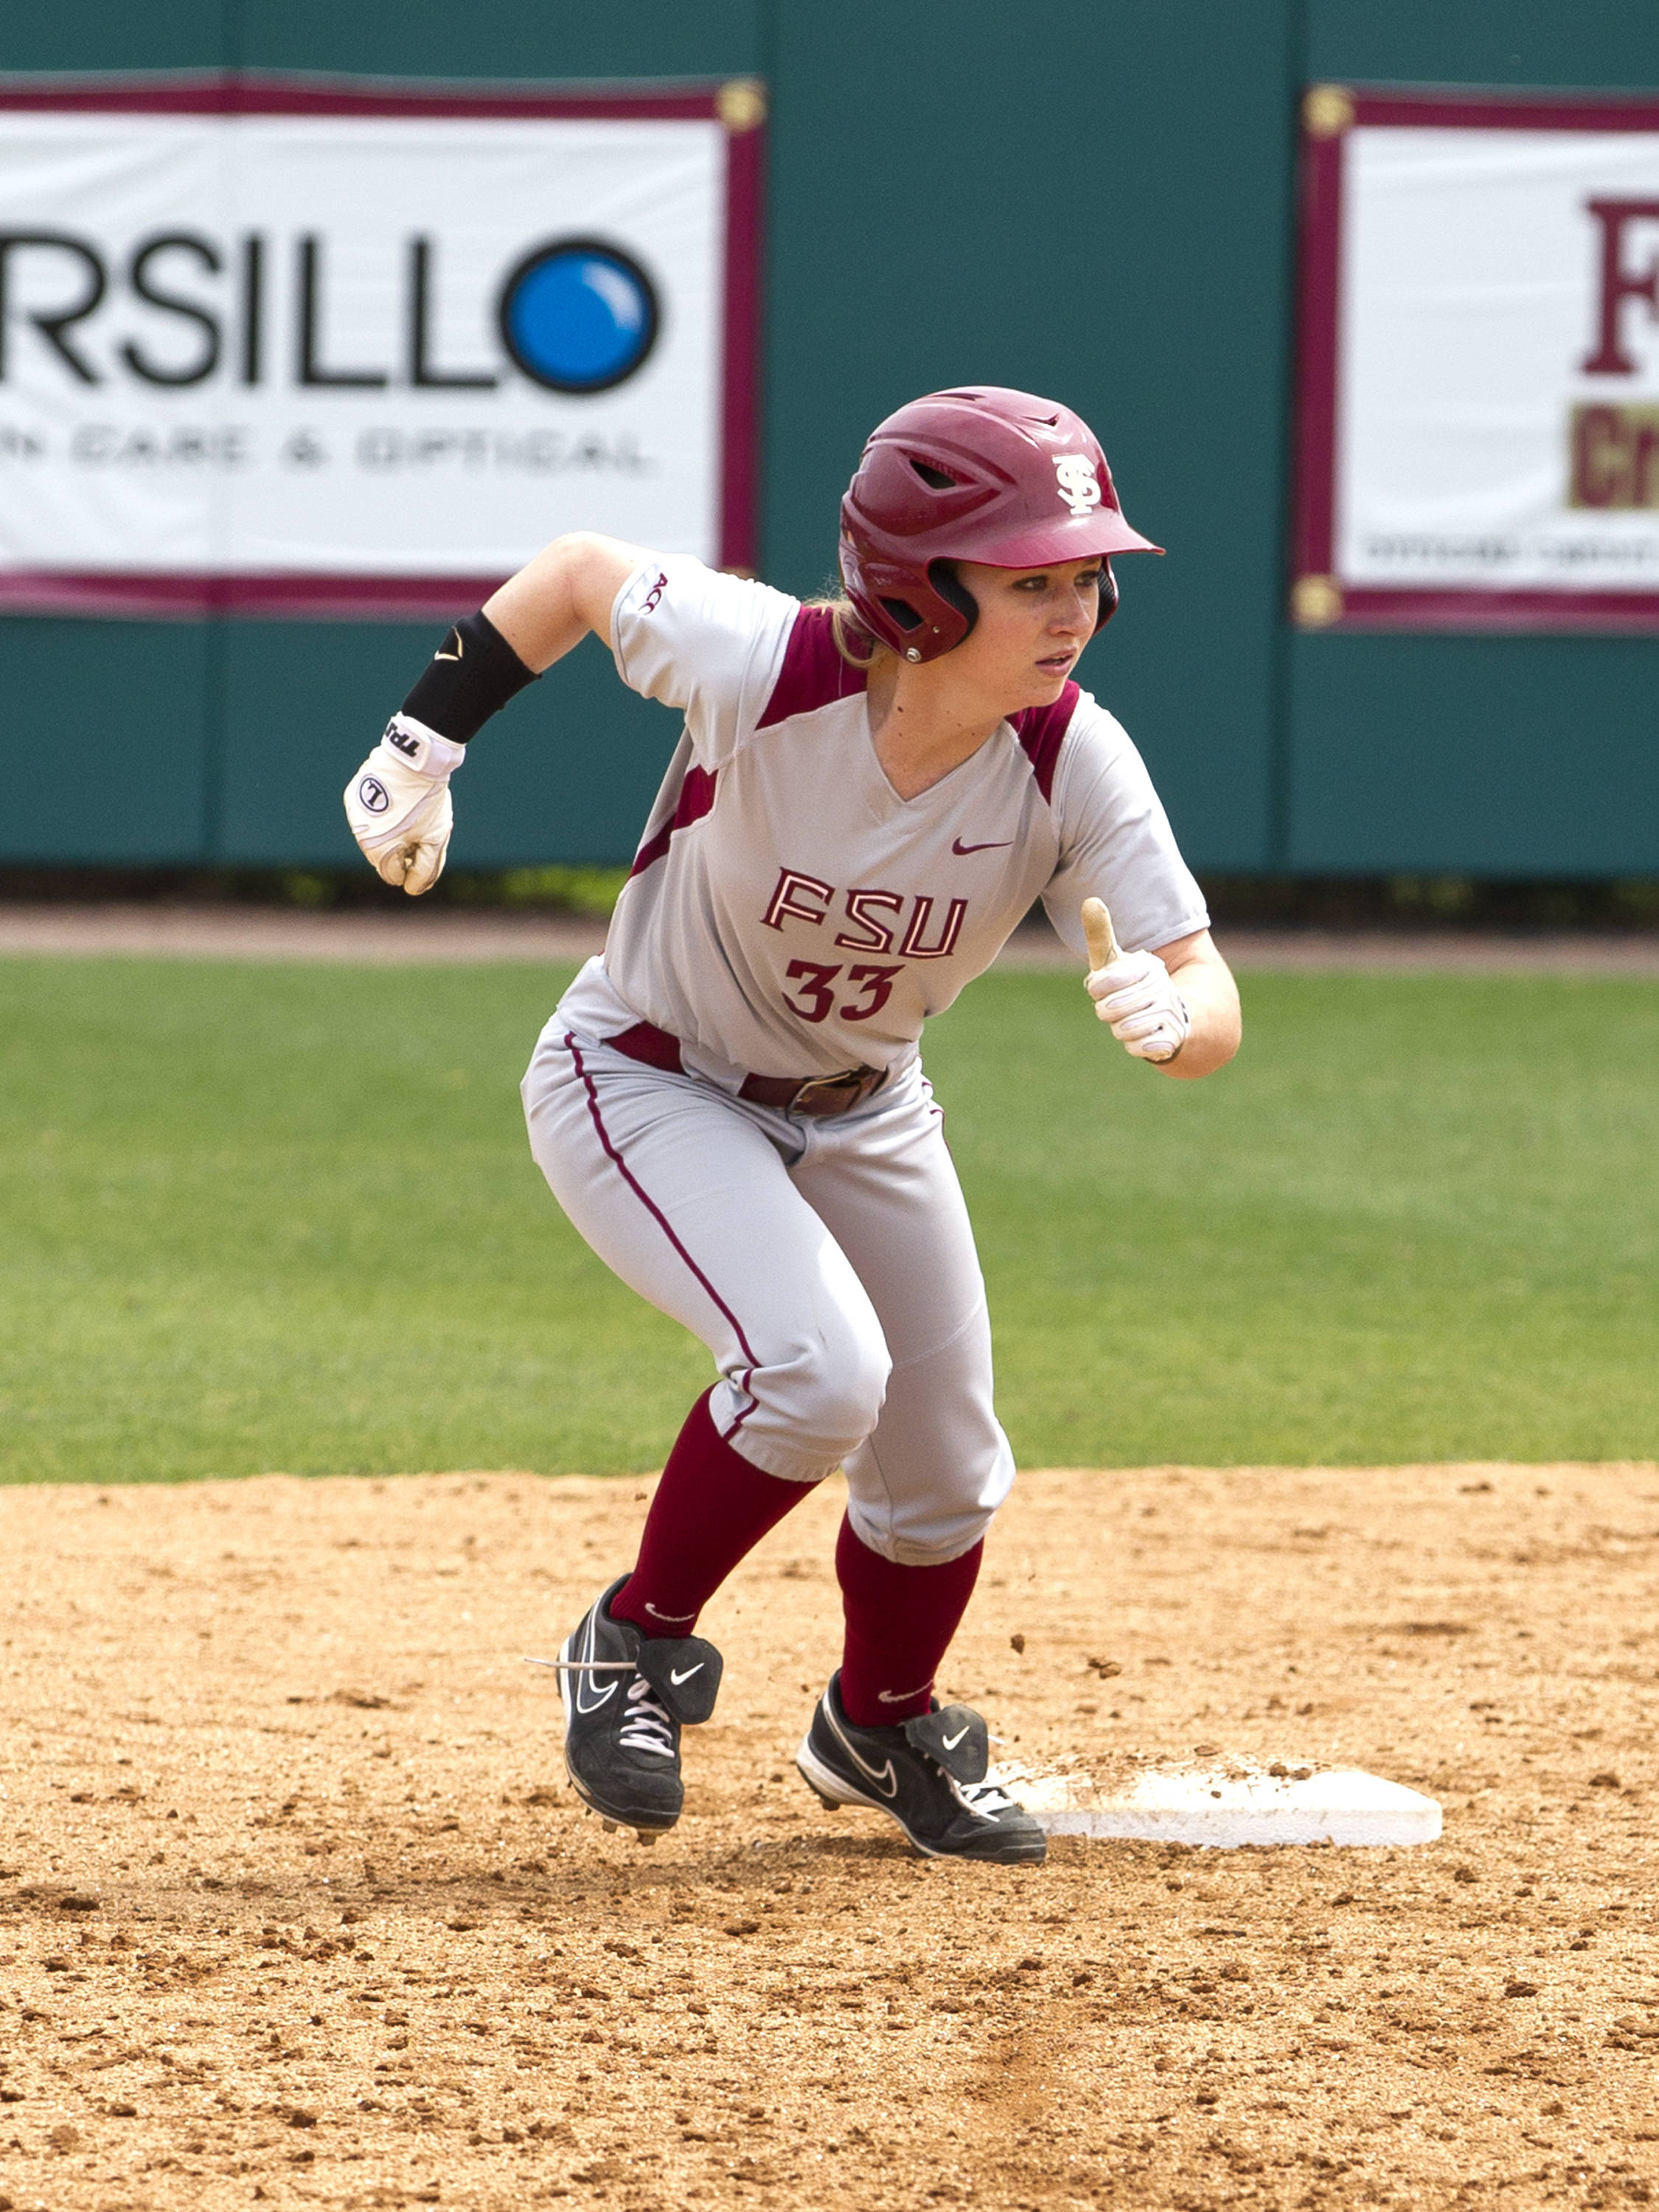 Kirstin Austin (33), FSU vs Minnesota, 03/17/13. (Photo by Steve Musco)